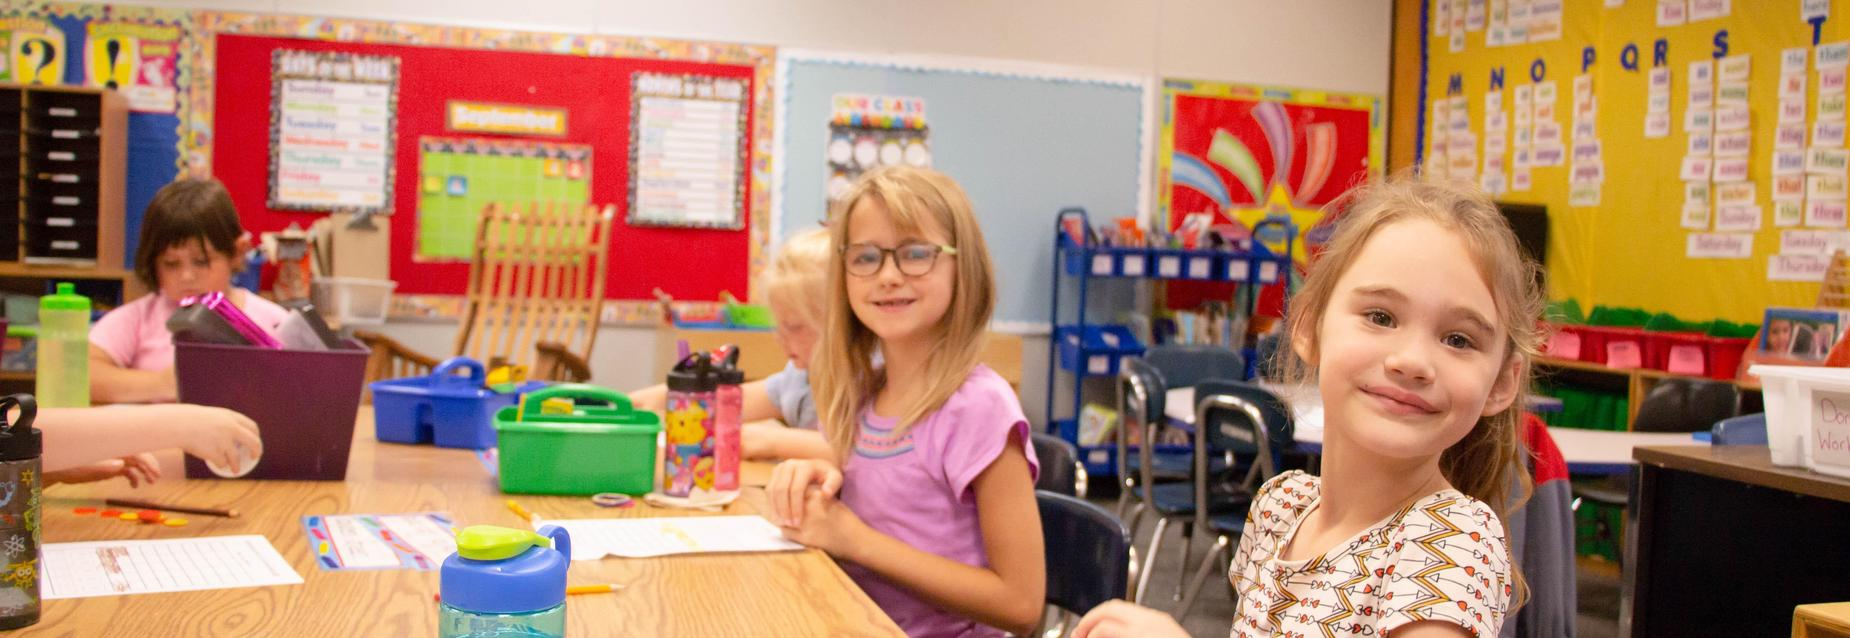 1st graders in a classroom